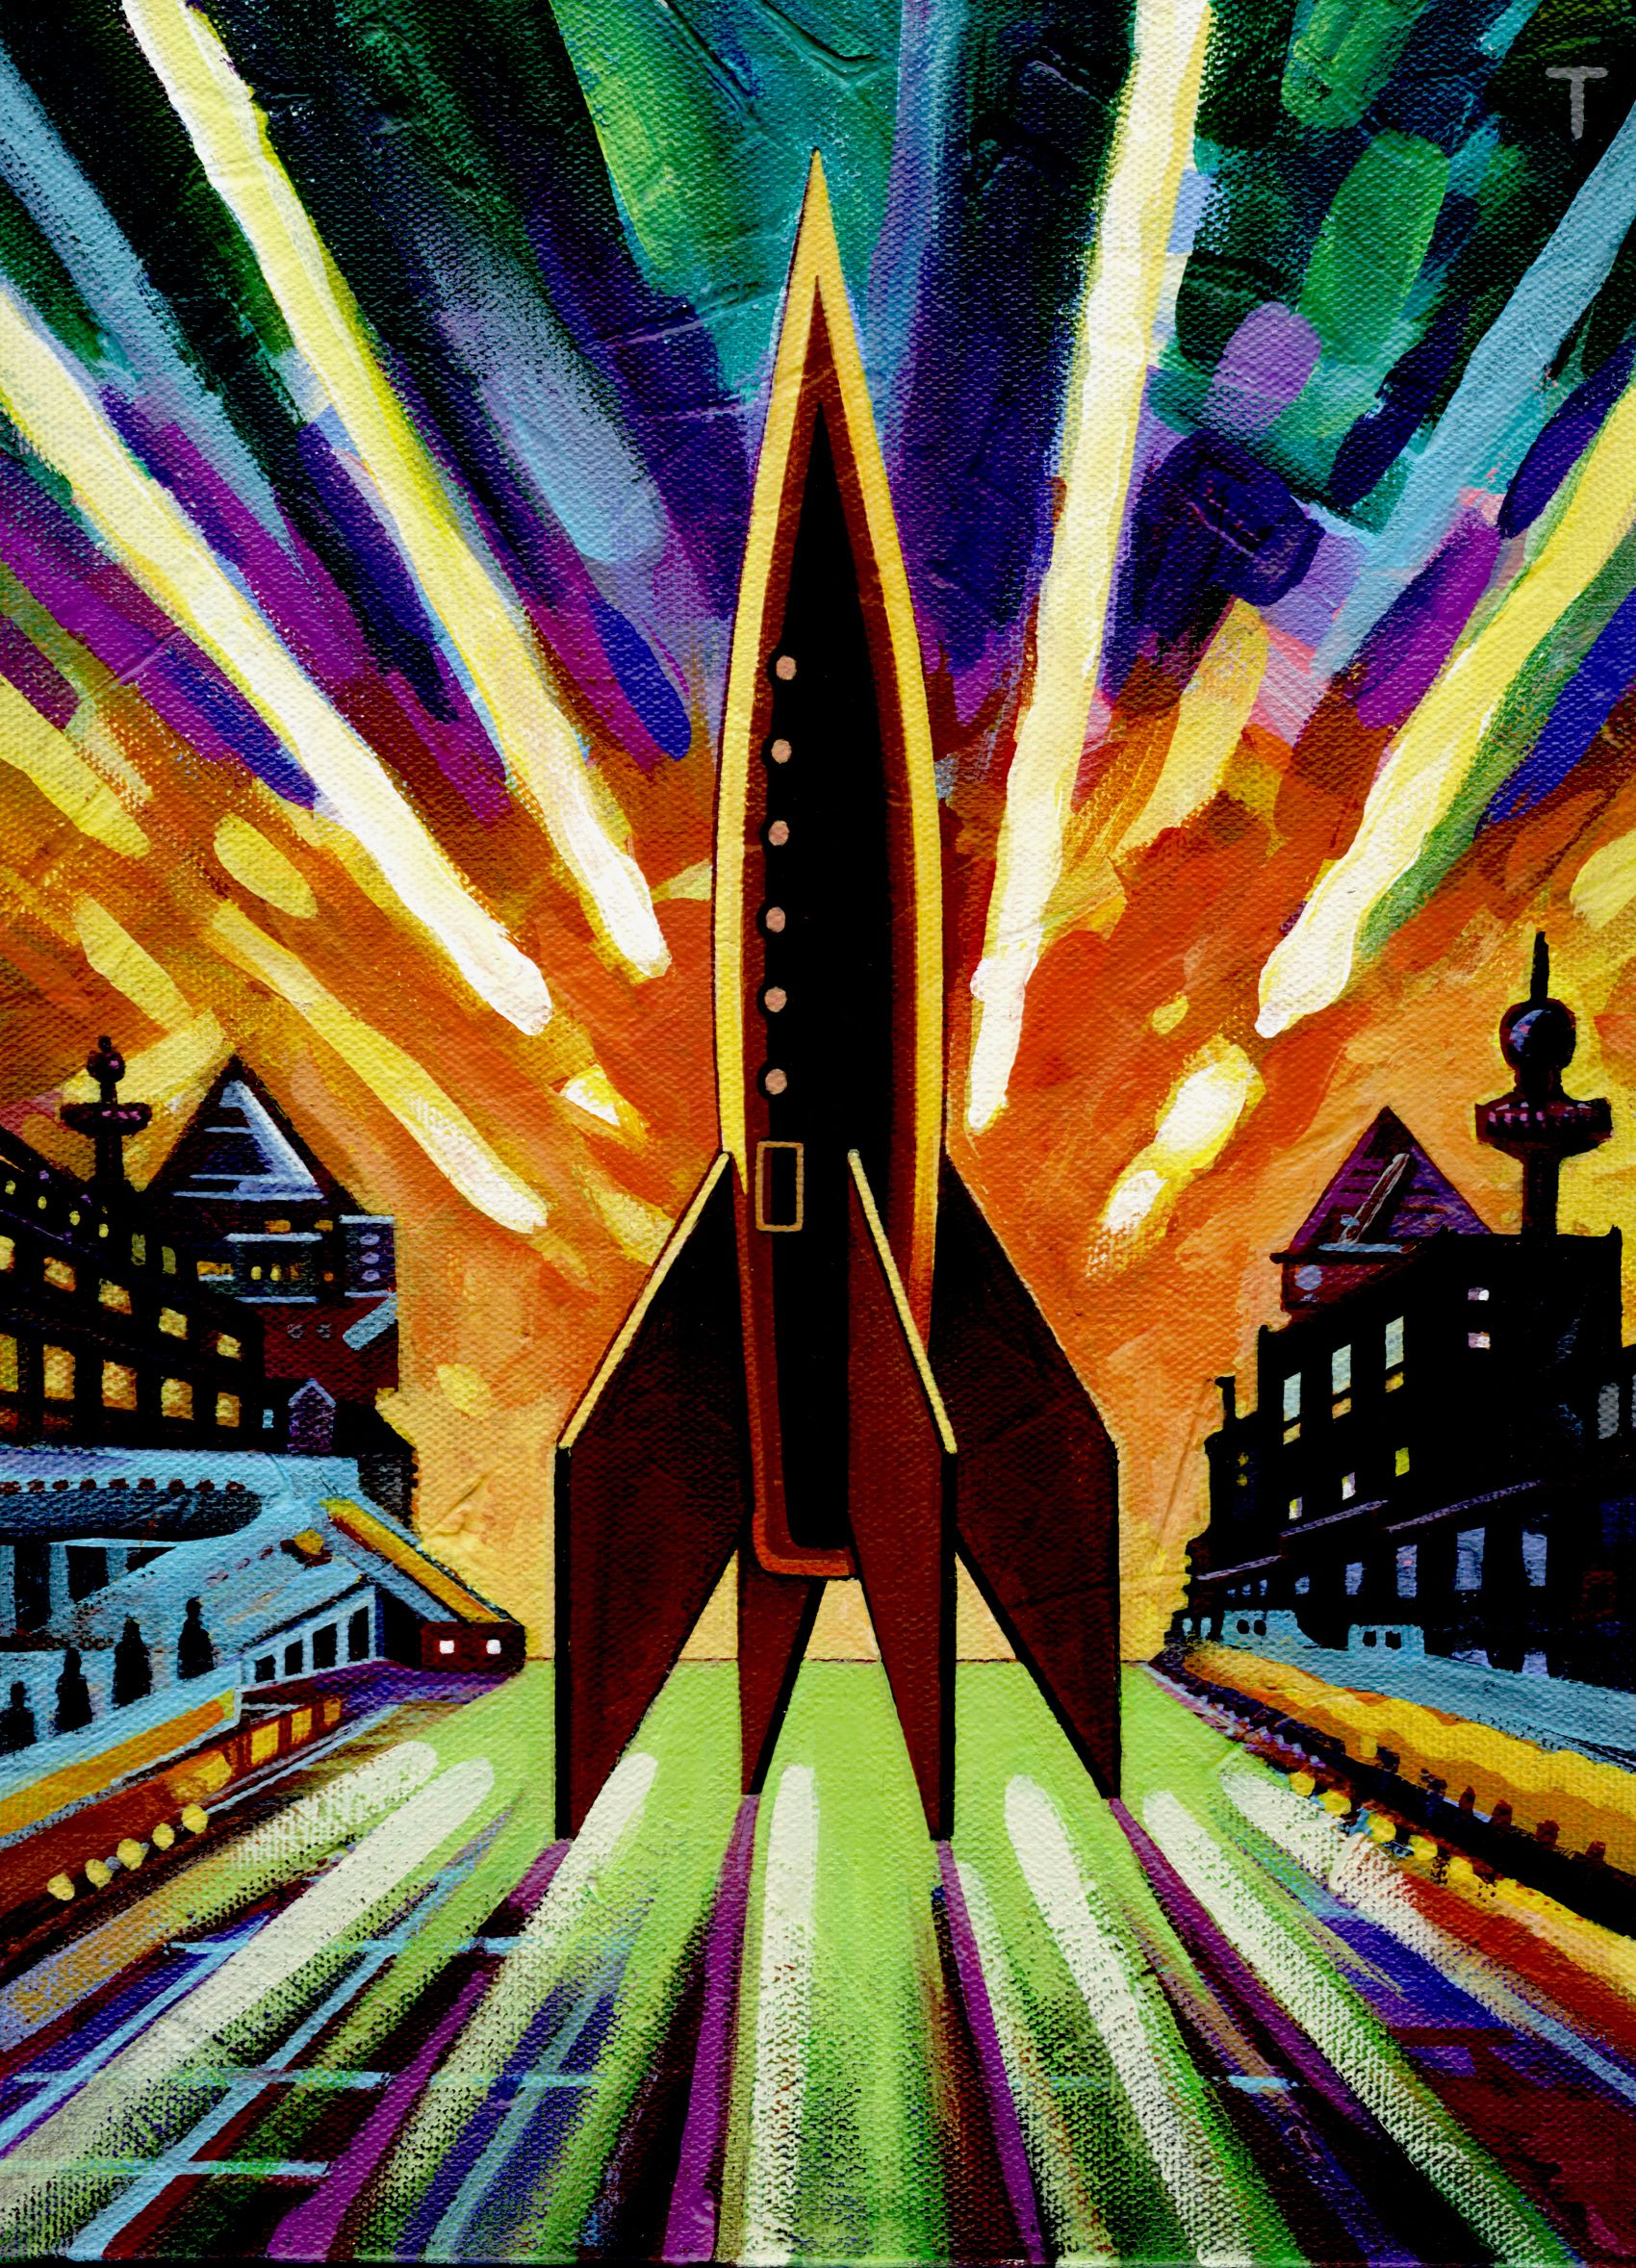 Rocket Painting # 25 | Space art, Rocket art, Painting